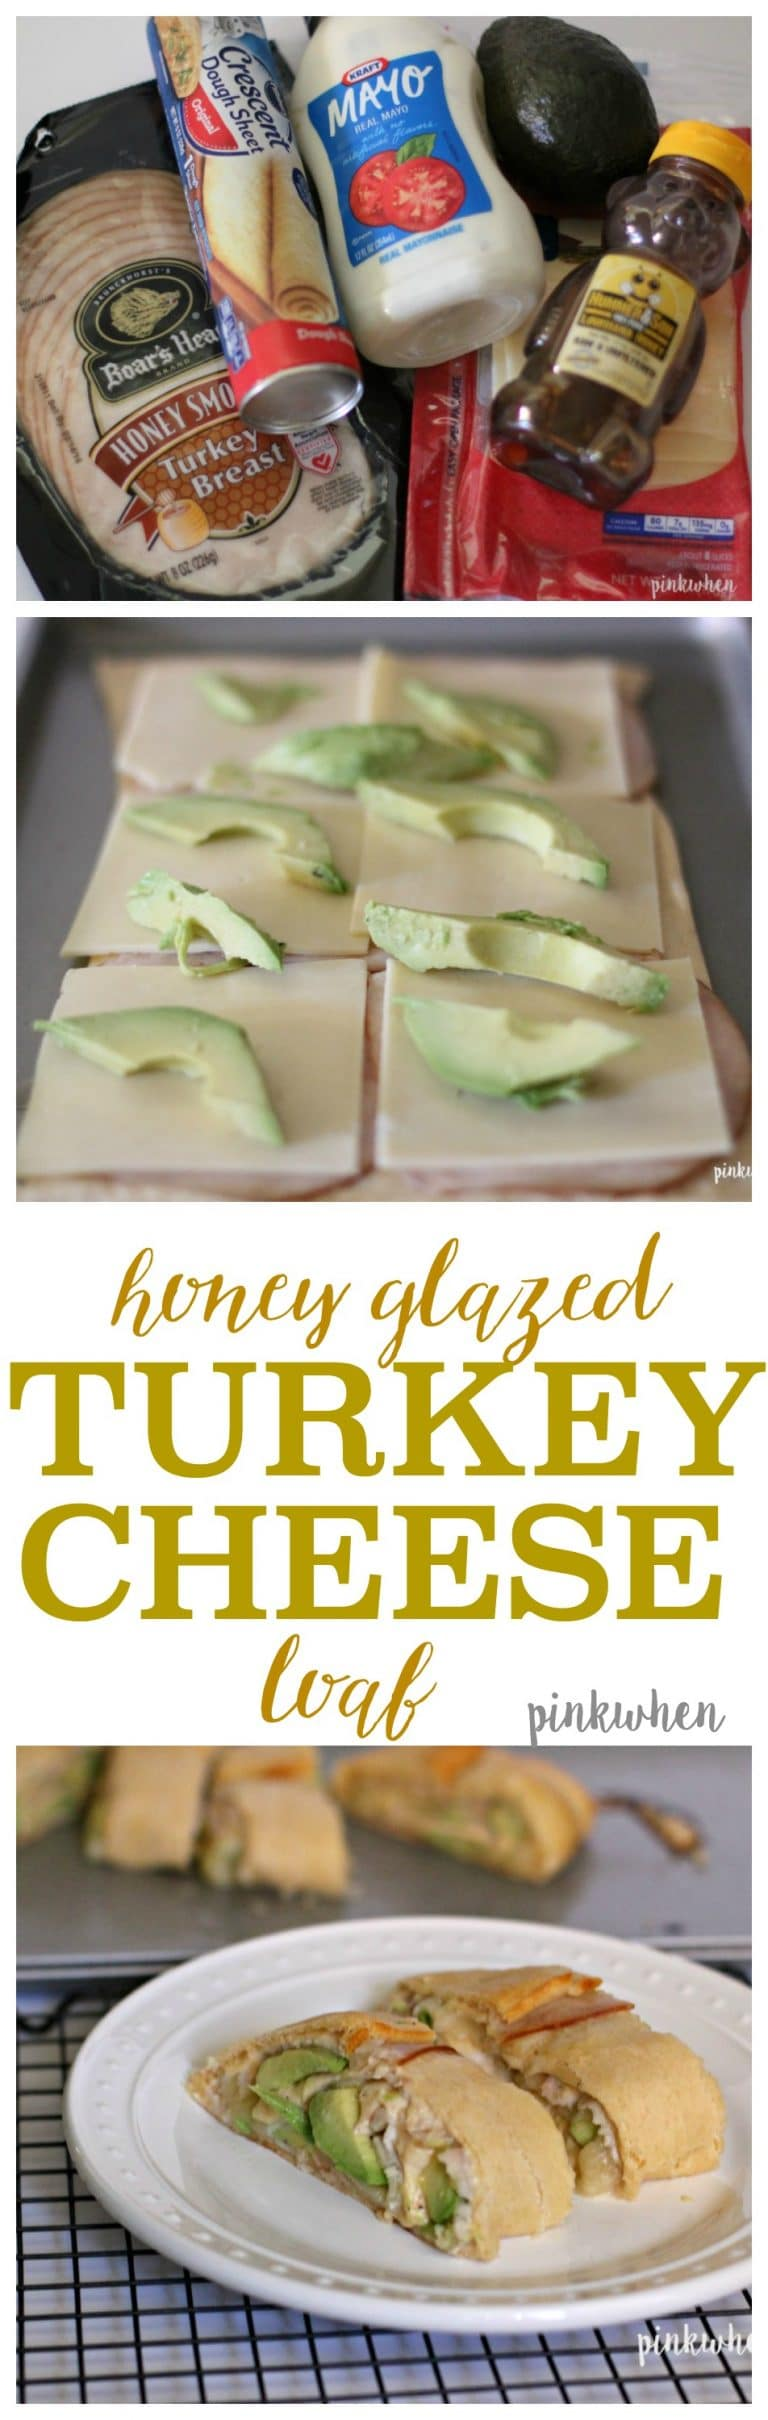 Honey Glazed Turkey Cheese Loaf